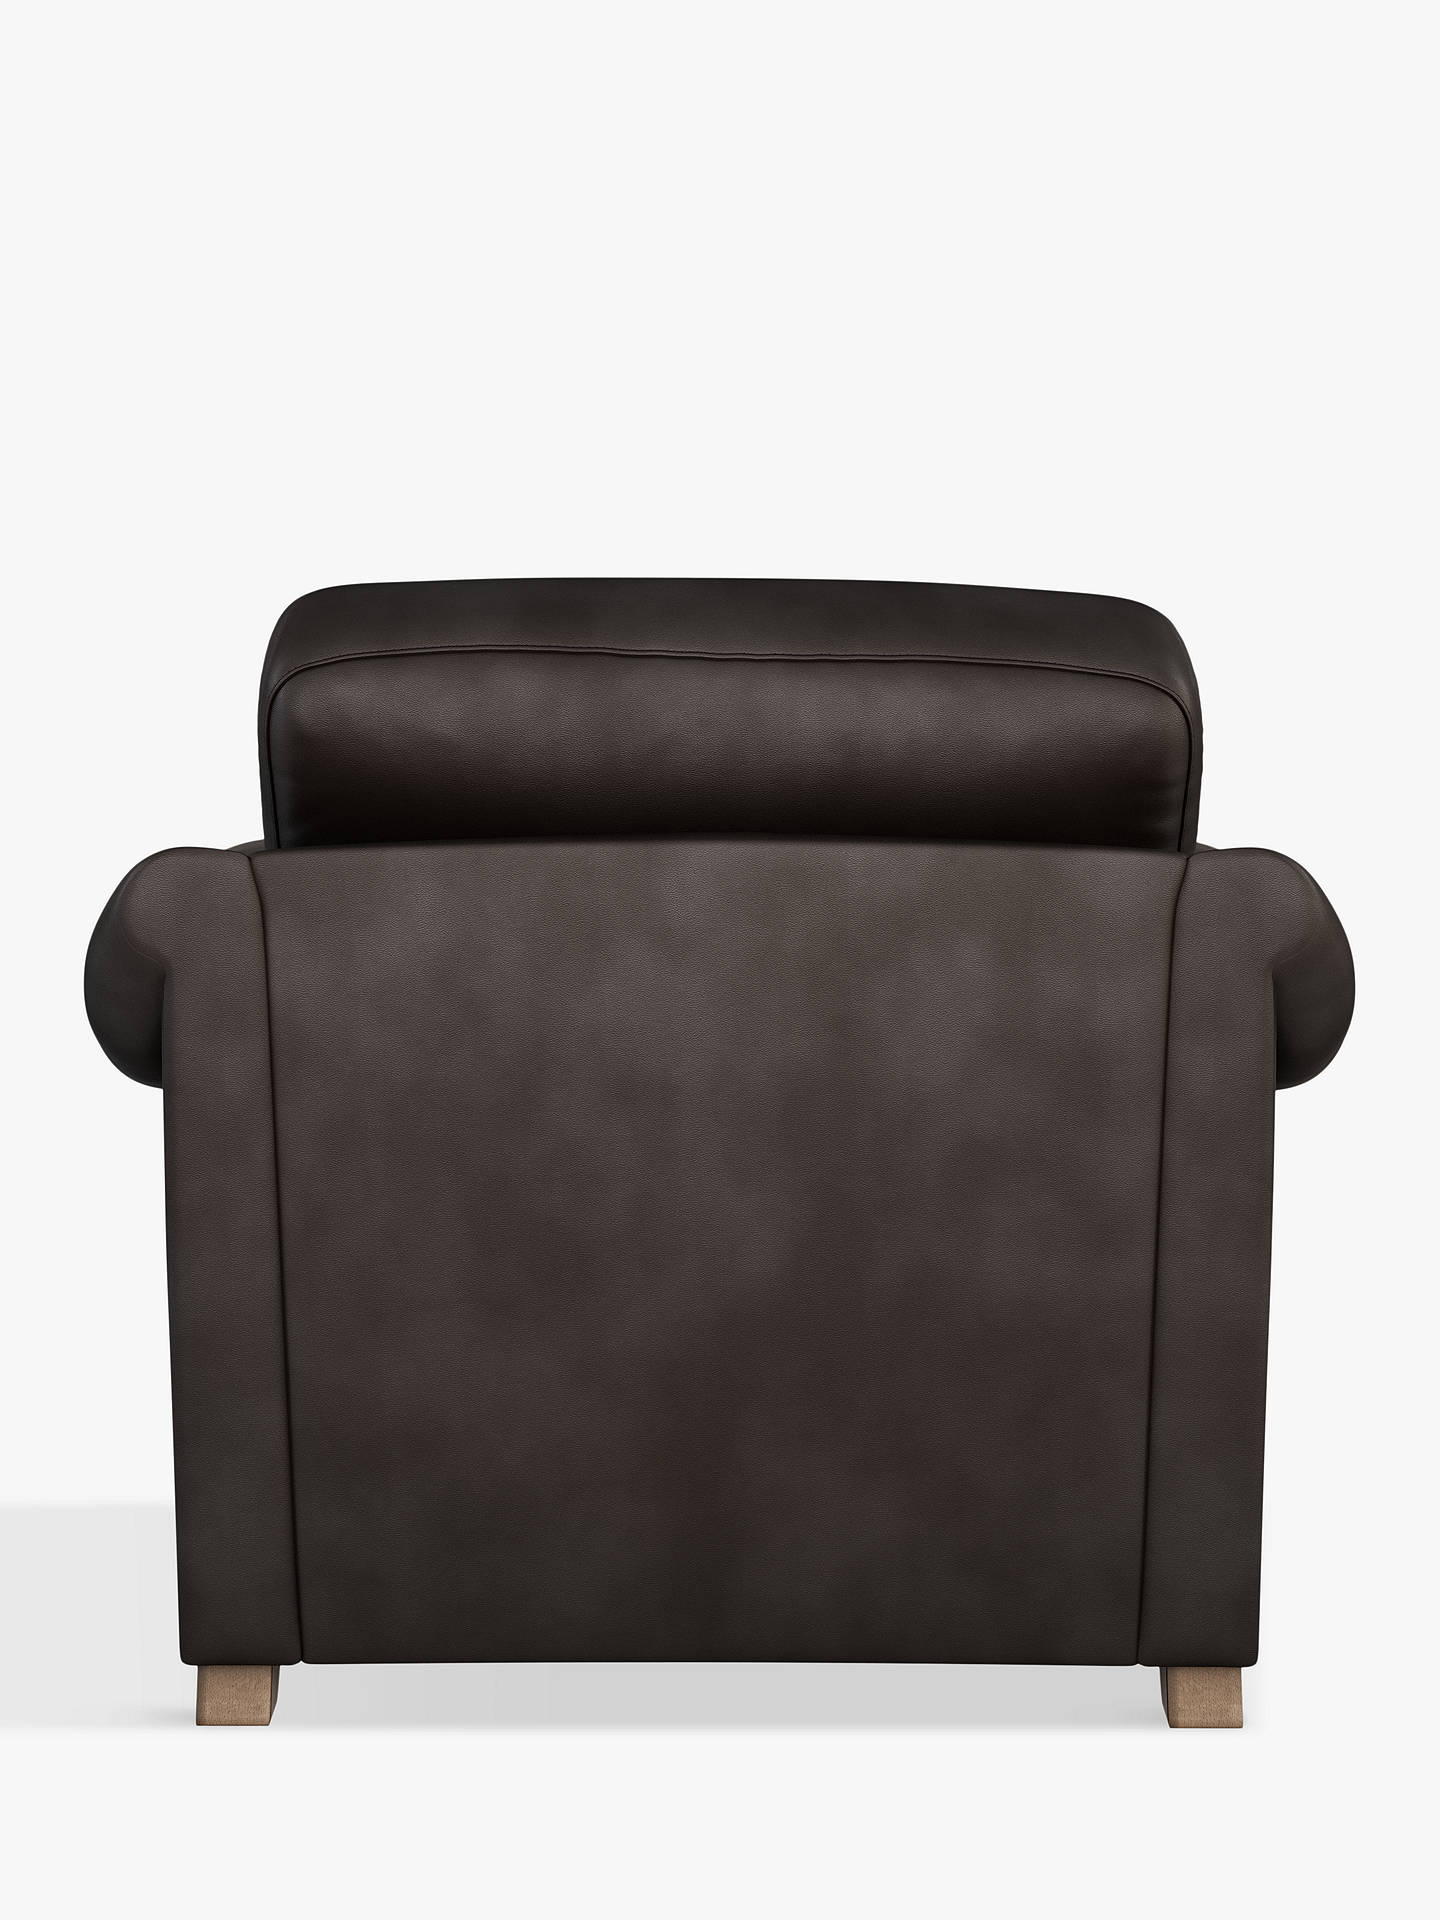 Buy John Lewis & Partners Camber Leather Snuggler, Dark Leg, Contempo Dark Chocolate Online at johnlewis.com